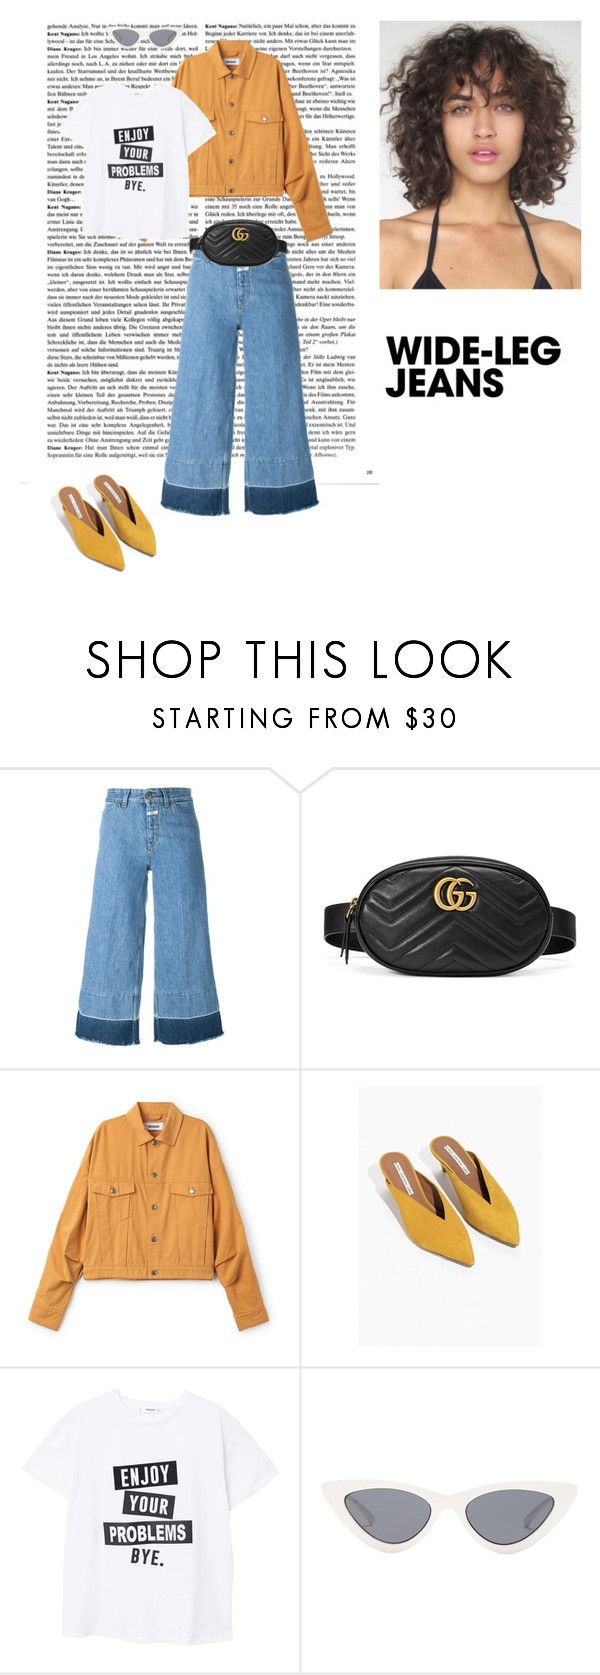 """06/03"" by dorey on Polyvore featuring Closed, Gucci, MANGO, Le Specs, casual, yellow, lazy, mustard and wideleg"